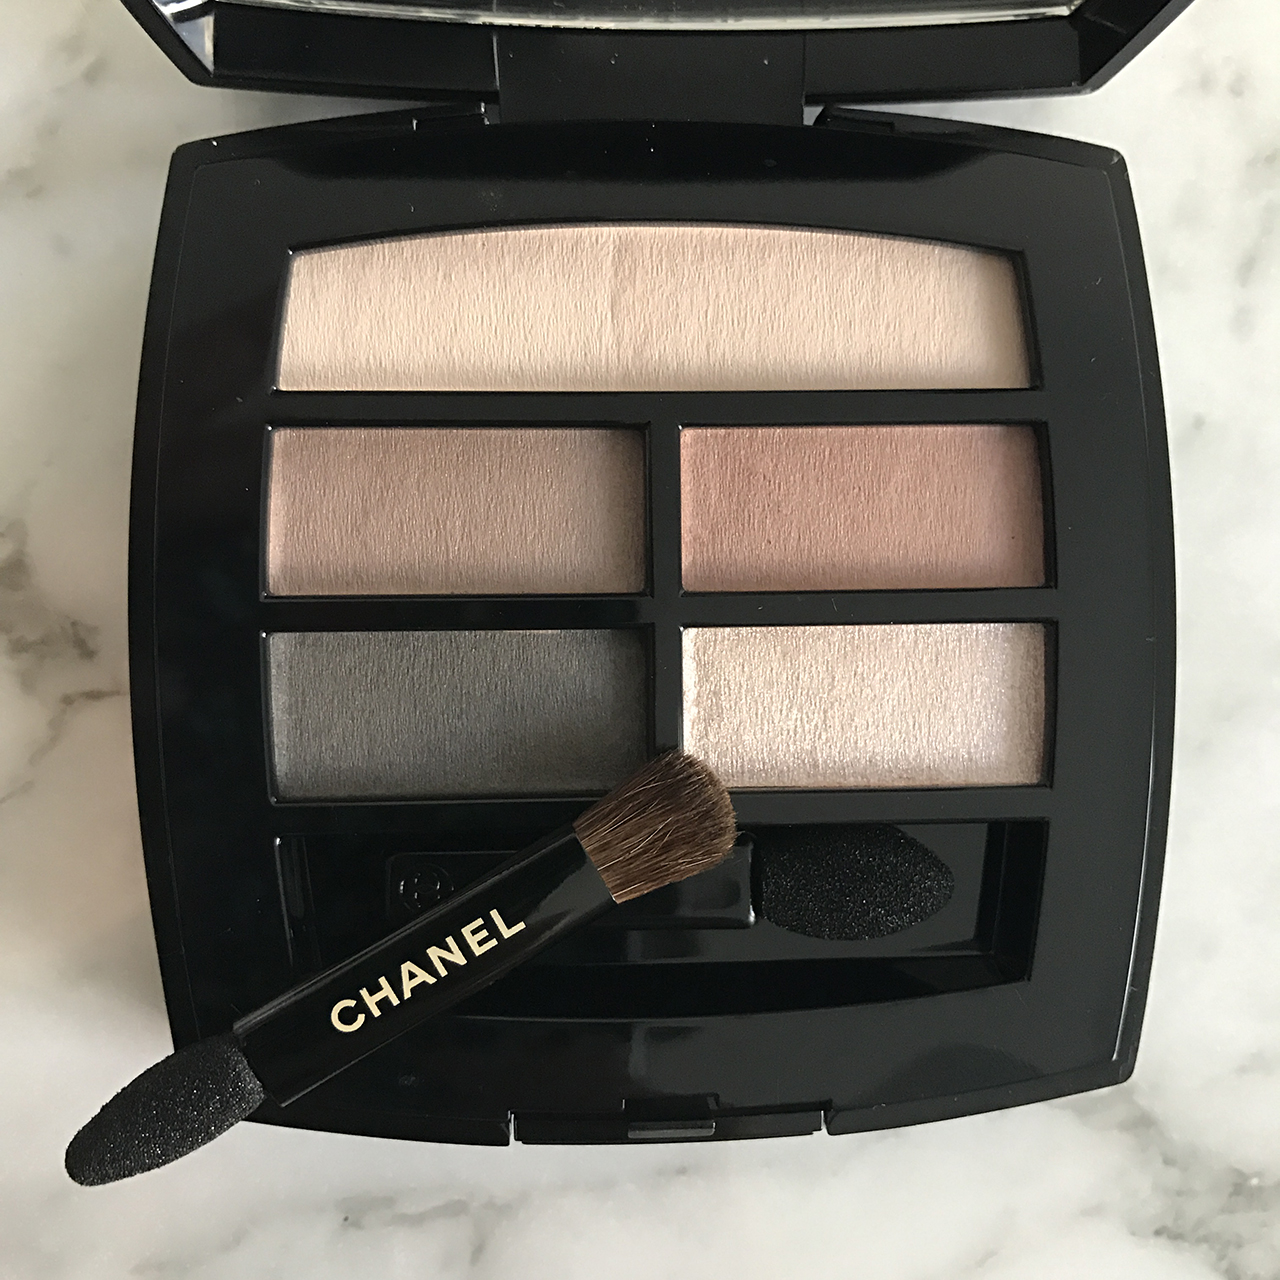 Chanel Les Beiges Healthy Glow Natural Eyeshadow Palette for Summer 2017